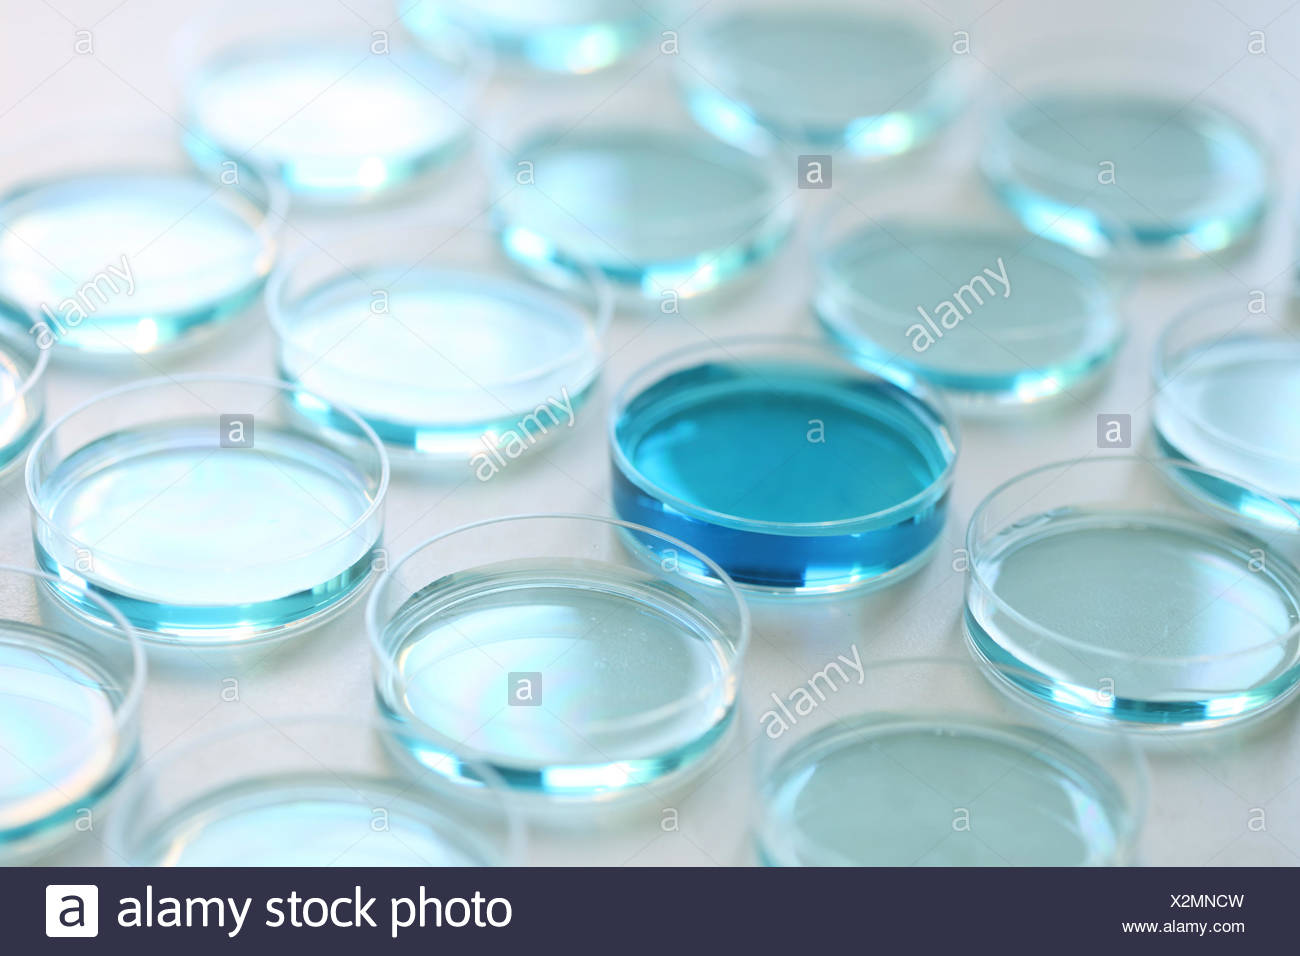 Petri dishes with blue liquid - Stock Image